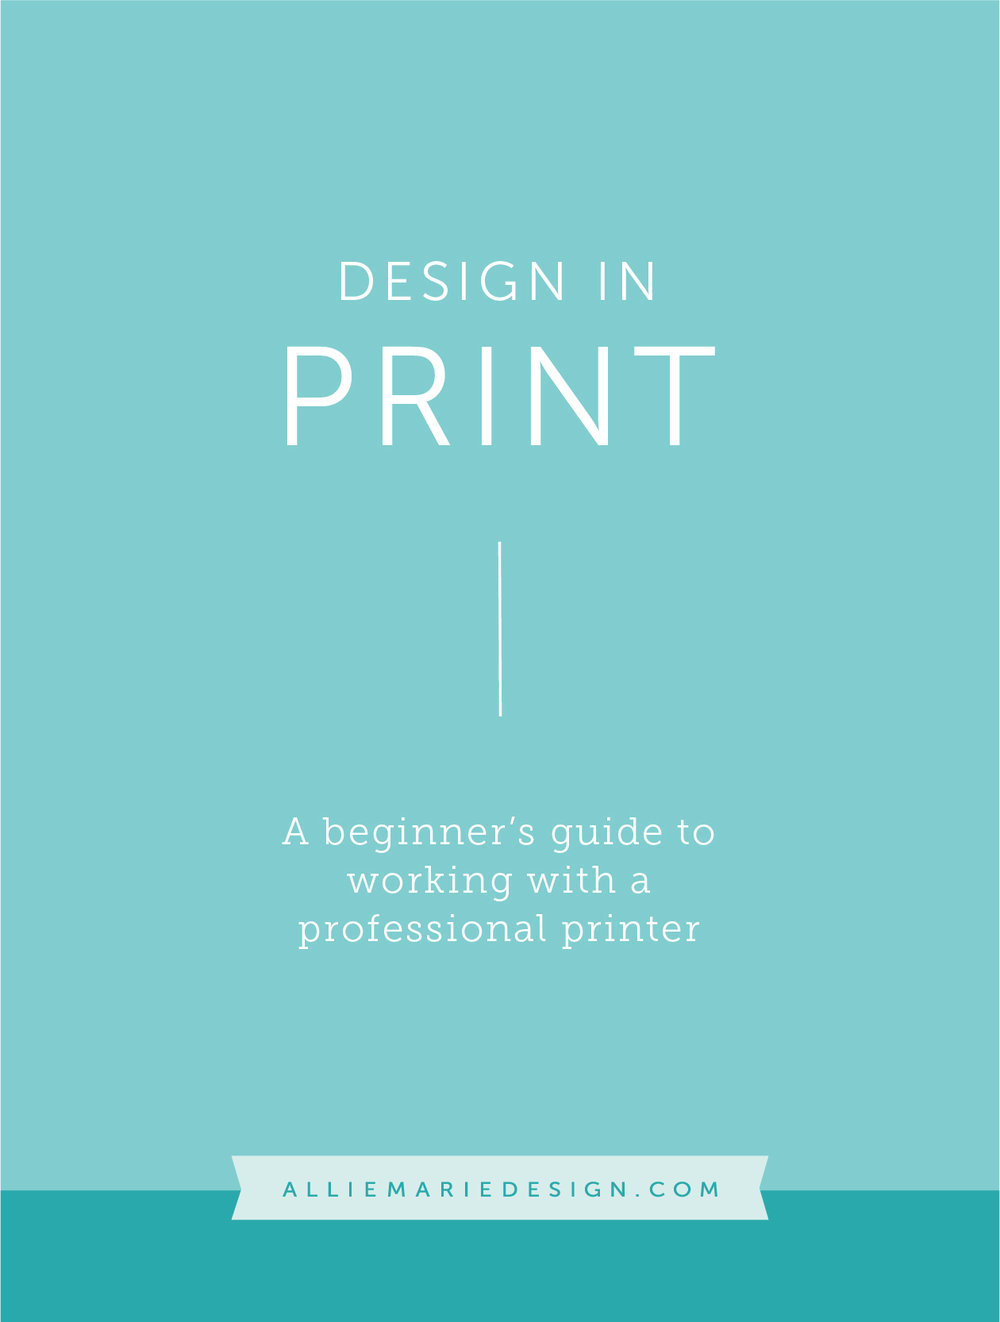 Design in Print: A Beginner's Guide to Working with a Professional Printer